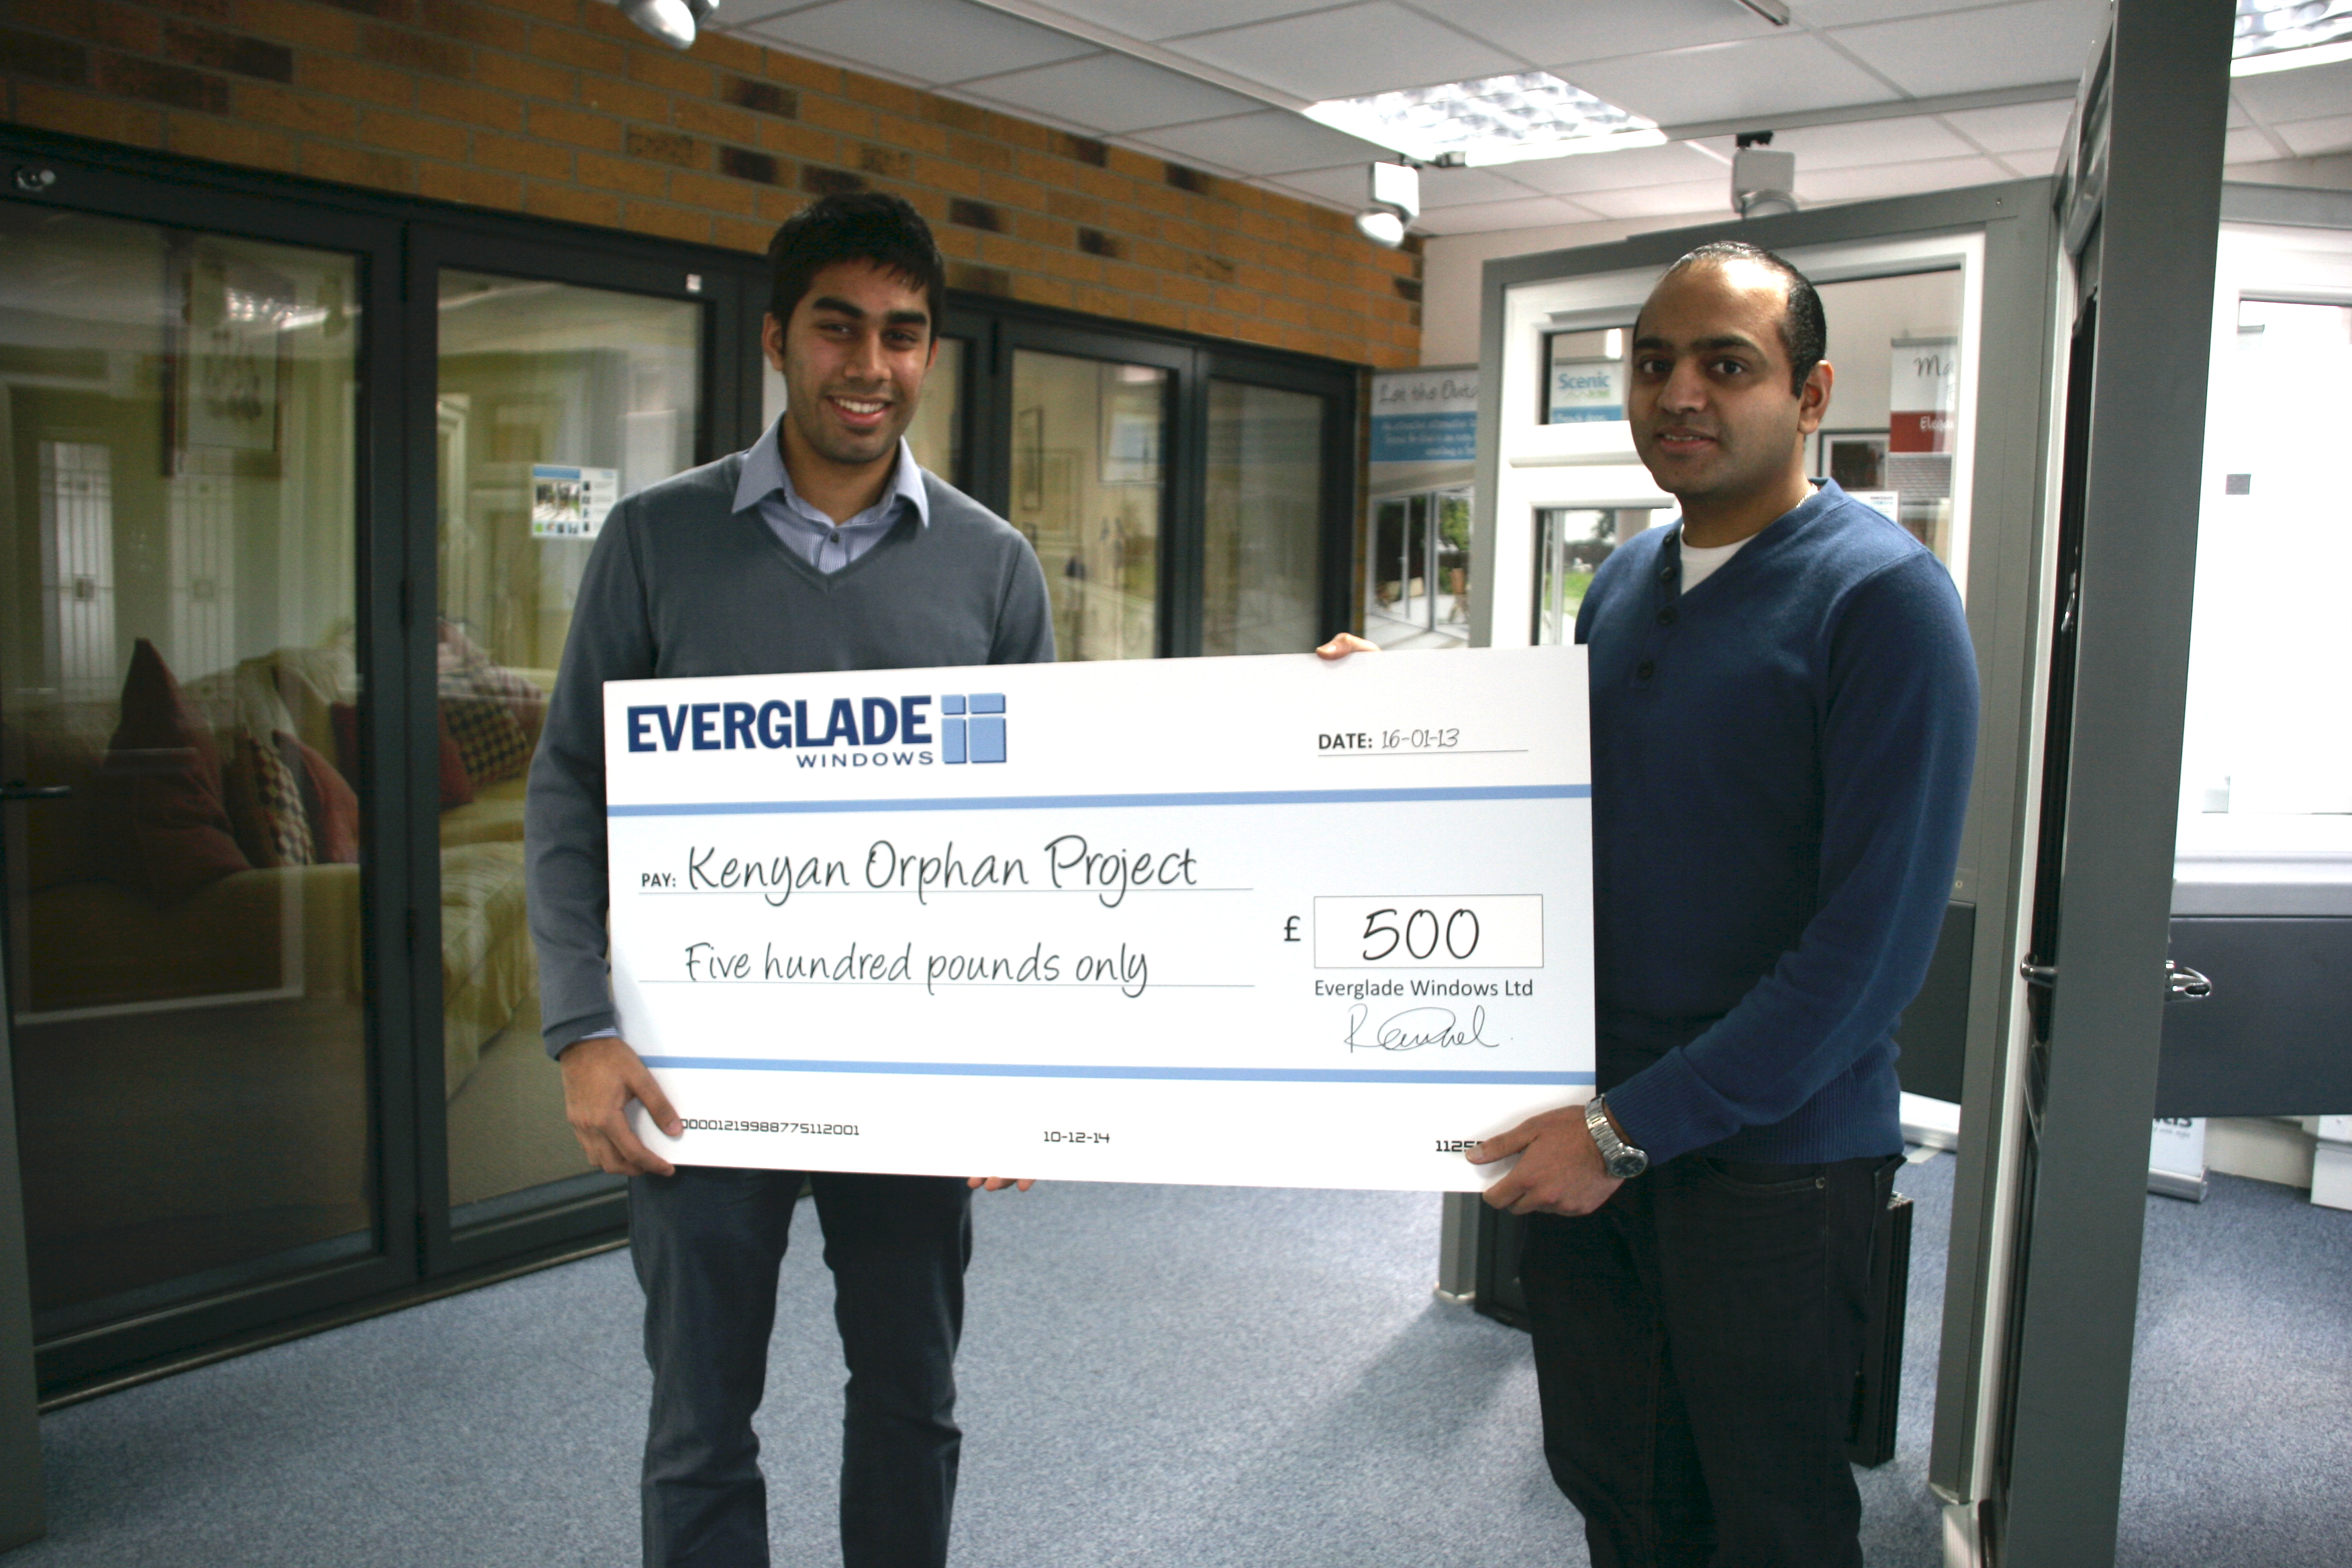 Everglade Windows supports the Kenyan Orphanage Project